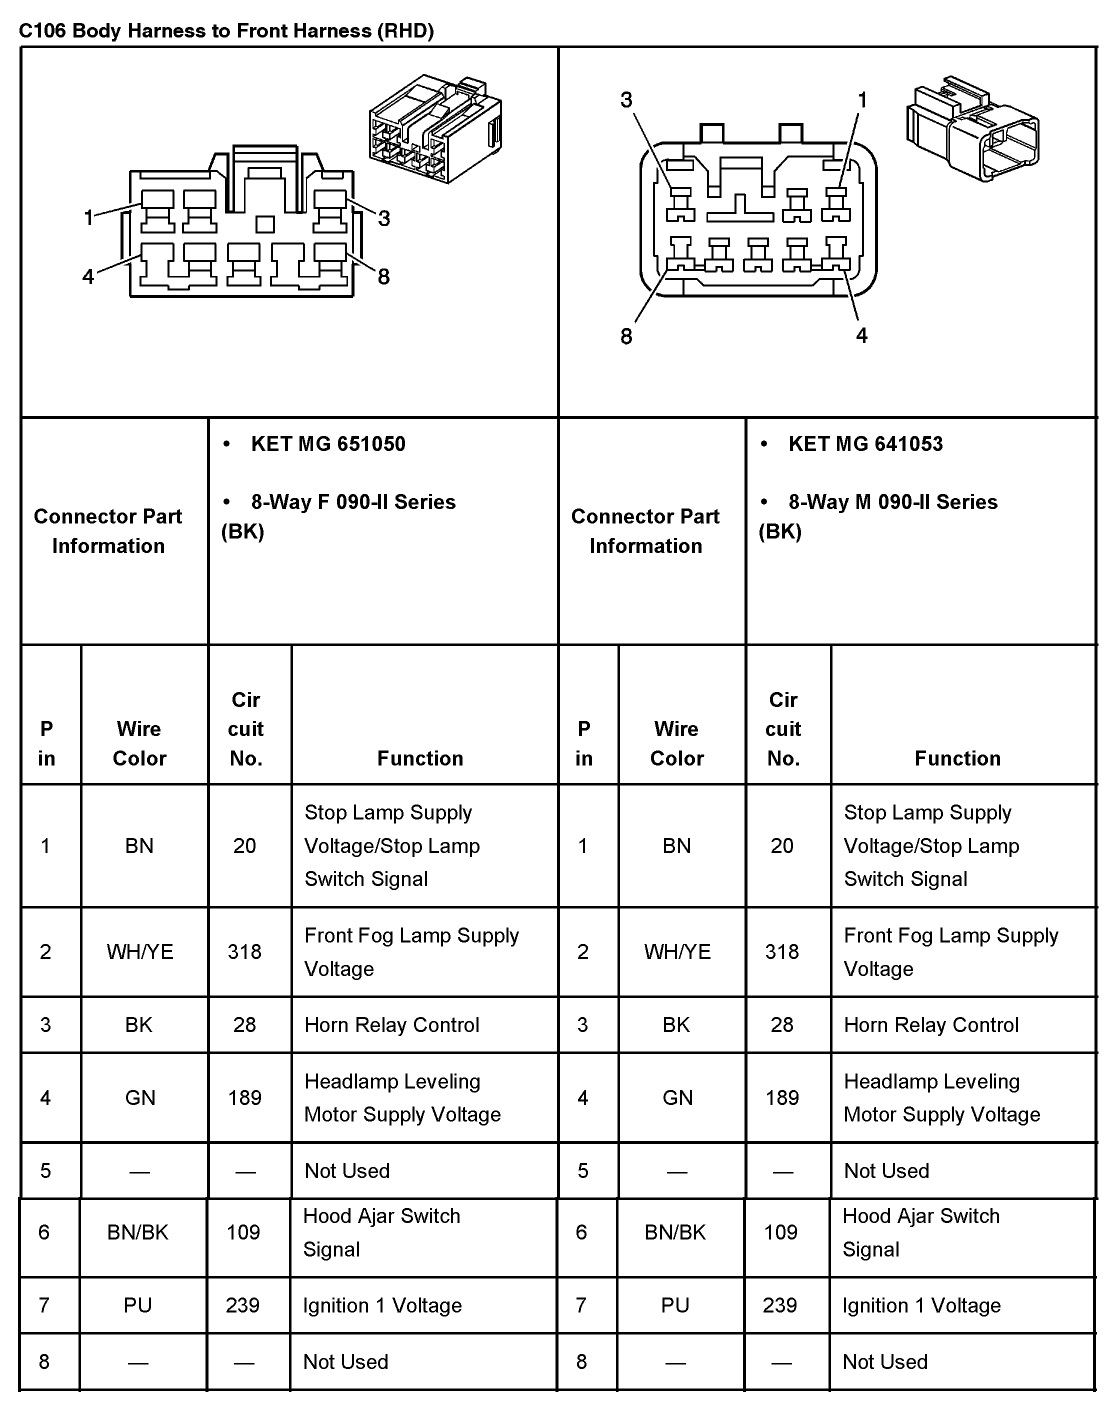 7331d1383704576 2005 aveo master connector list diagrams conn3 jpg 2005 aveo master connector list and diagrams 2009 chevy aveo fuse box location at crackthecode.co